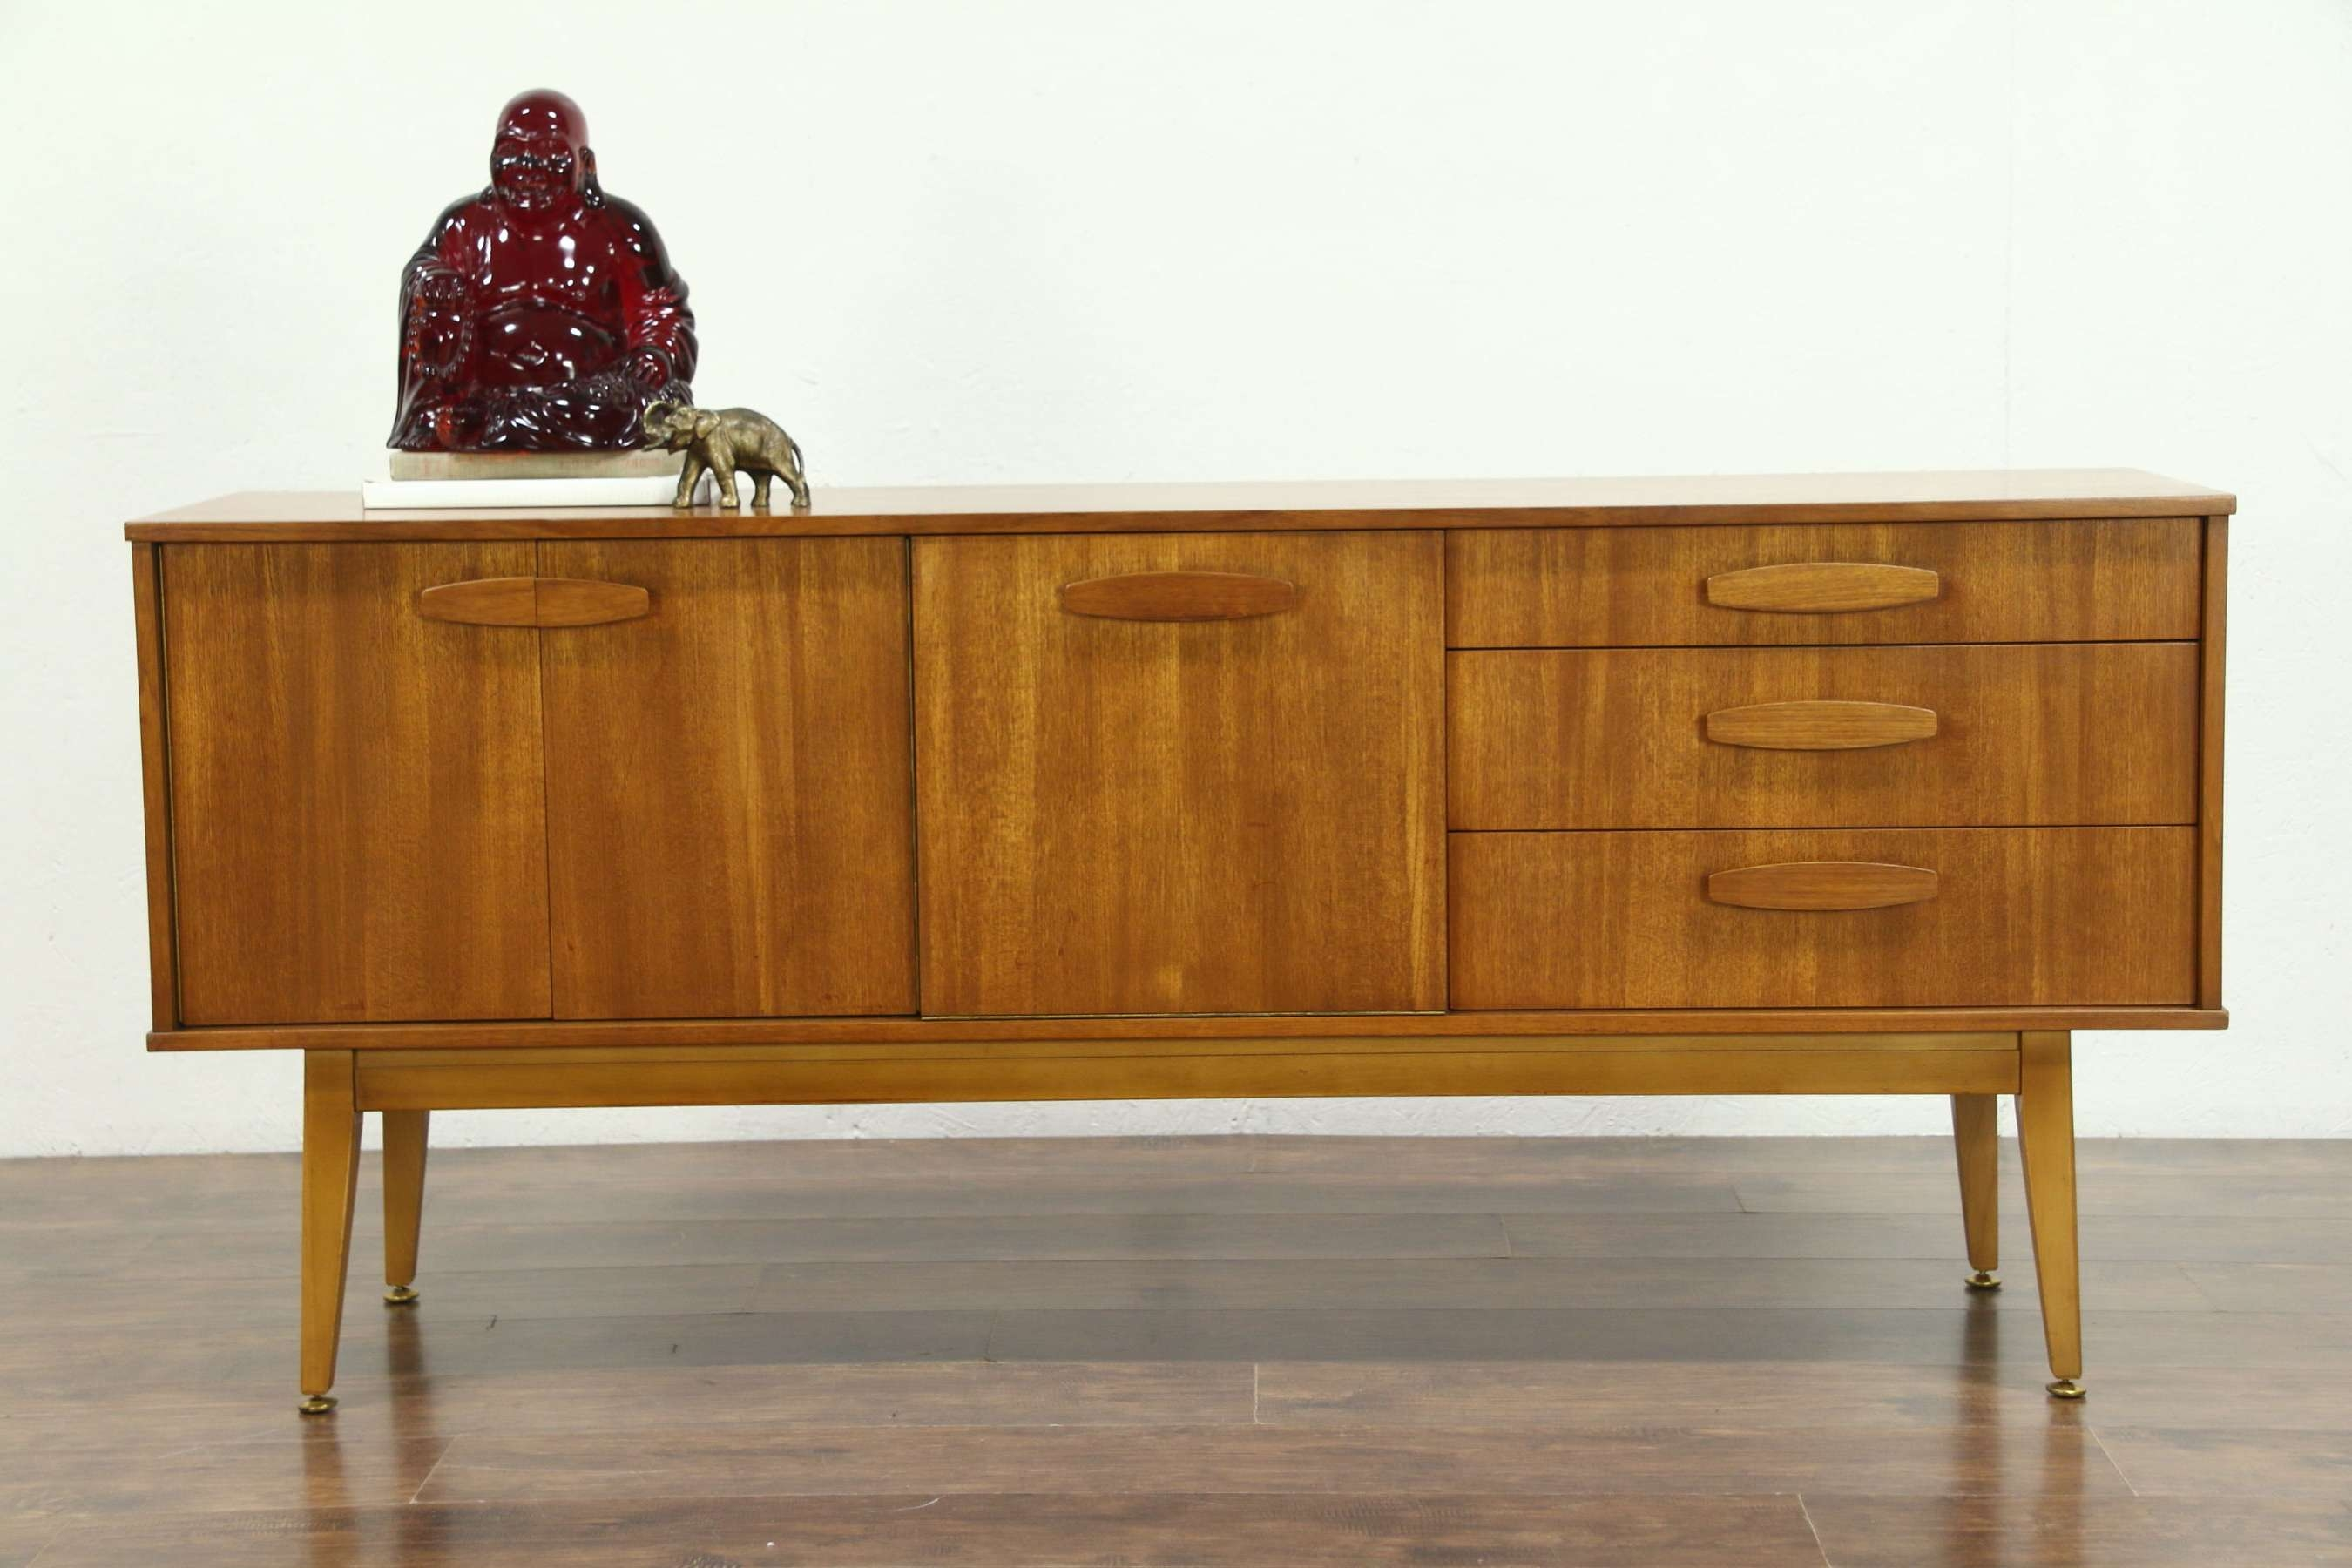 Midcentury Modern 1960's Teak Sideboard, Bar Cabinet Or Tv Console Within Midcentury Sideboards (View 20 of 20)